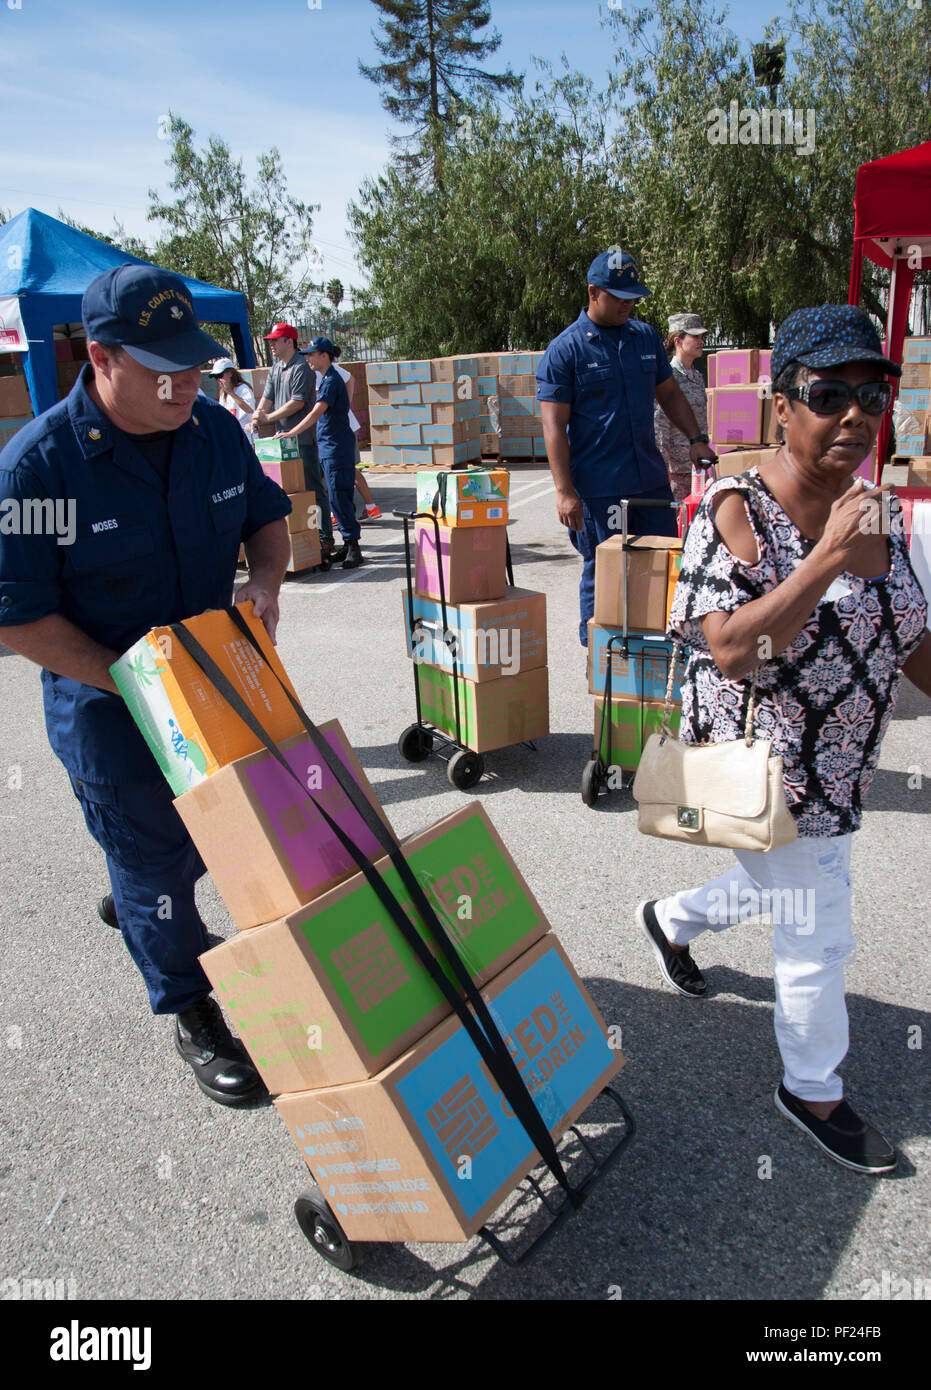 Coast Guard members from both Sector and Base Los Angeles/Long Beach worked together with members of the Air Force, Marine Corps and Army to support the 'Feed the Community' event with Feed the Children, Saturday, Oct. 24, 2015. This event took place at the Salvation Army Seimon Family Youth and Community center in Los Angeles. Military members worked along side Los Angeles Clippers players, staff, season ticket holders and military family members to distribute 1,200 boxes of food and personal care items to families in need. (U.S. Coast Guard photo by Petty Officer 1st Class Sondra-Kay Kneen) - Stock Image